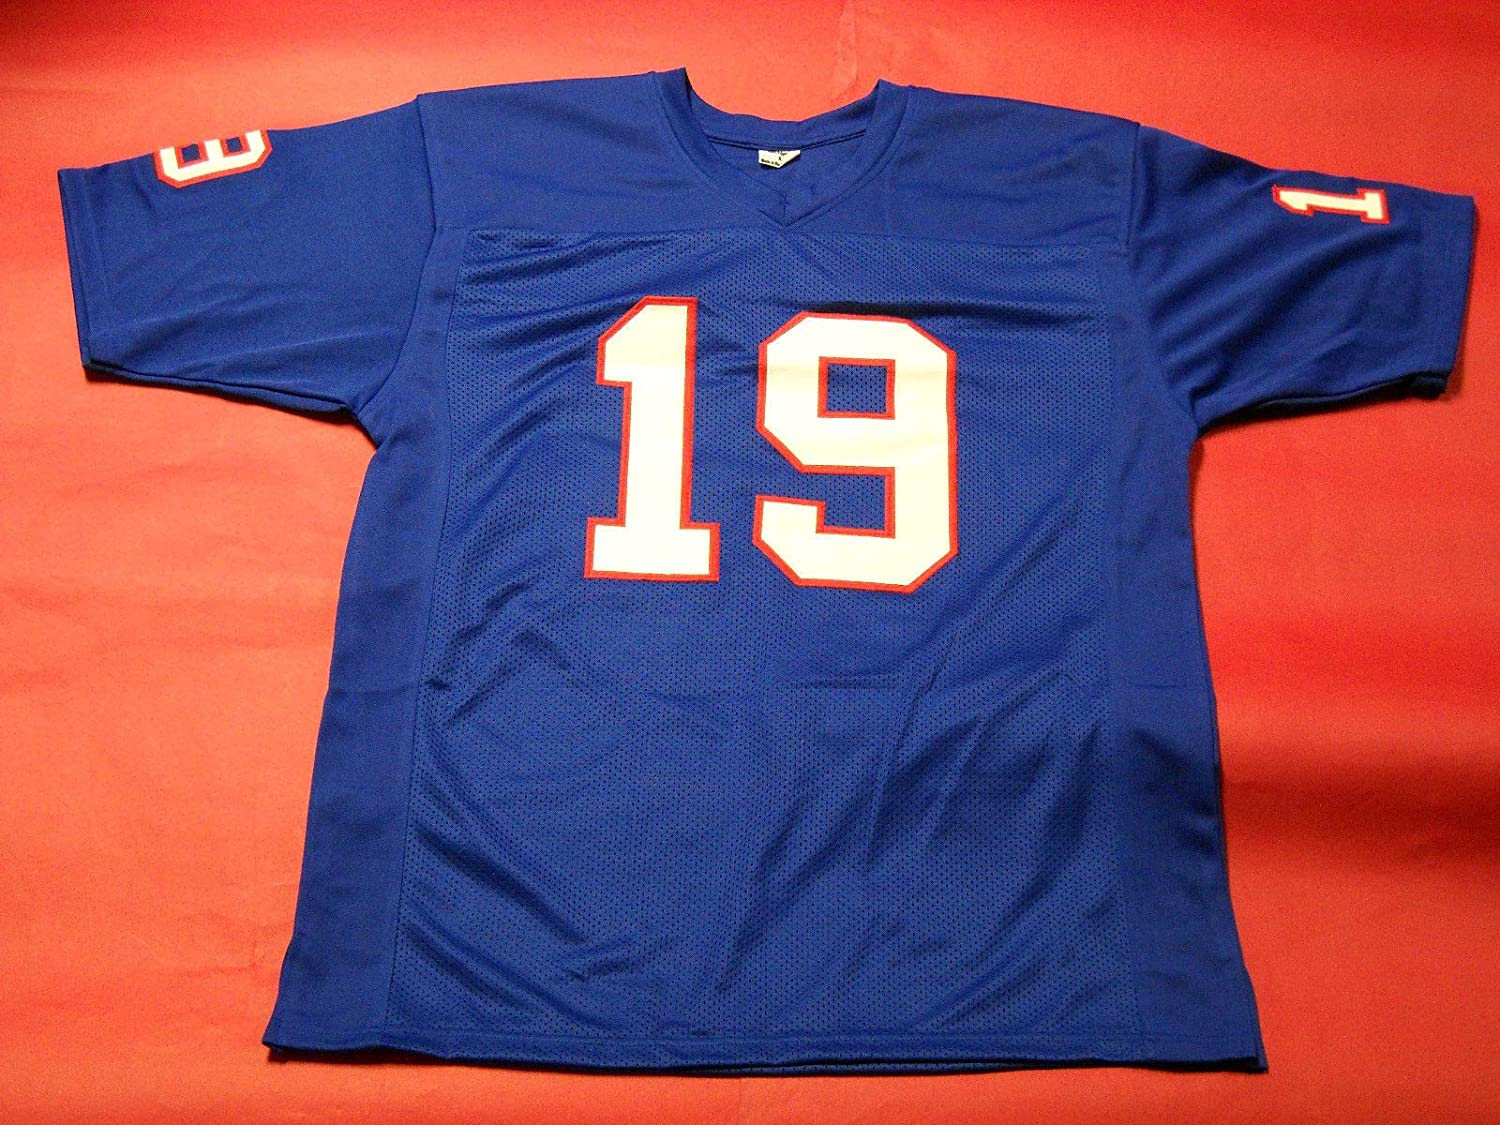 huge selection of 2ffdc 76b59 ERIC DICKERSON AUTOGRAPHED SMU JERSEY JSA W PONY EXPRESS ...